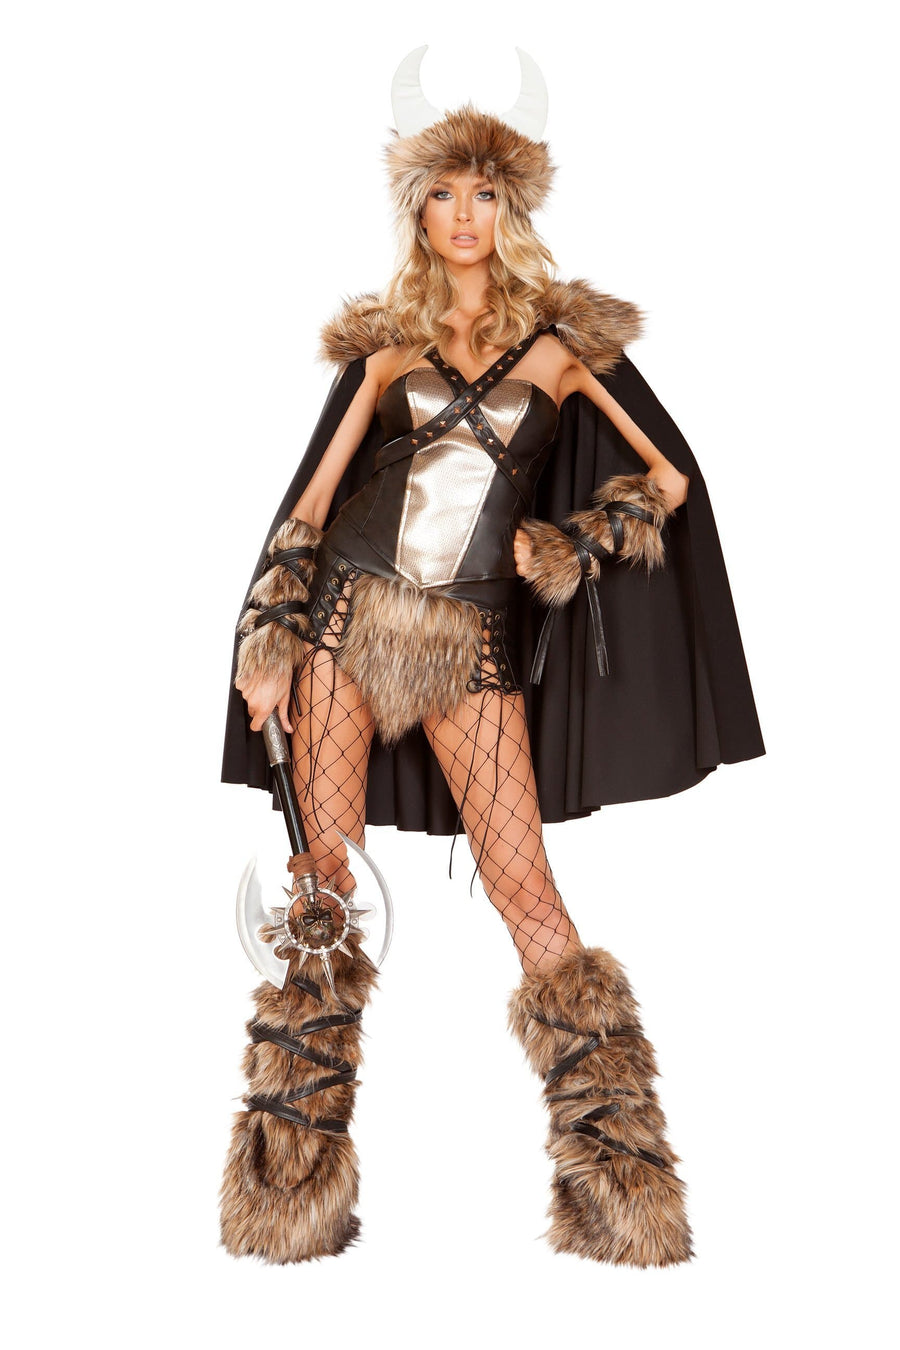 Roma Small / Print Four Piece Viking Warrior SHC-4892-S-R Apparel & Accessories > Costumes & Accessories > Costumes